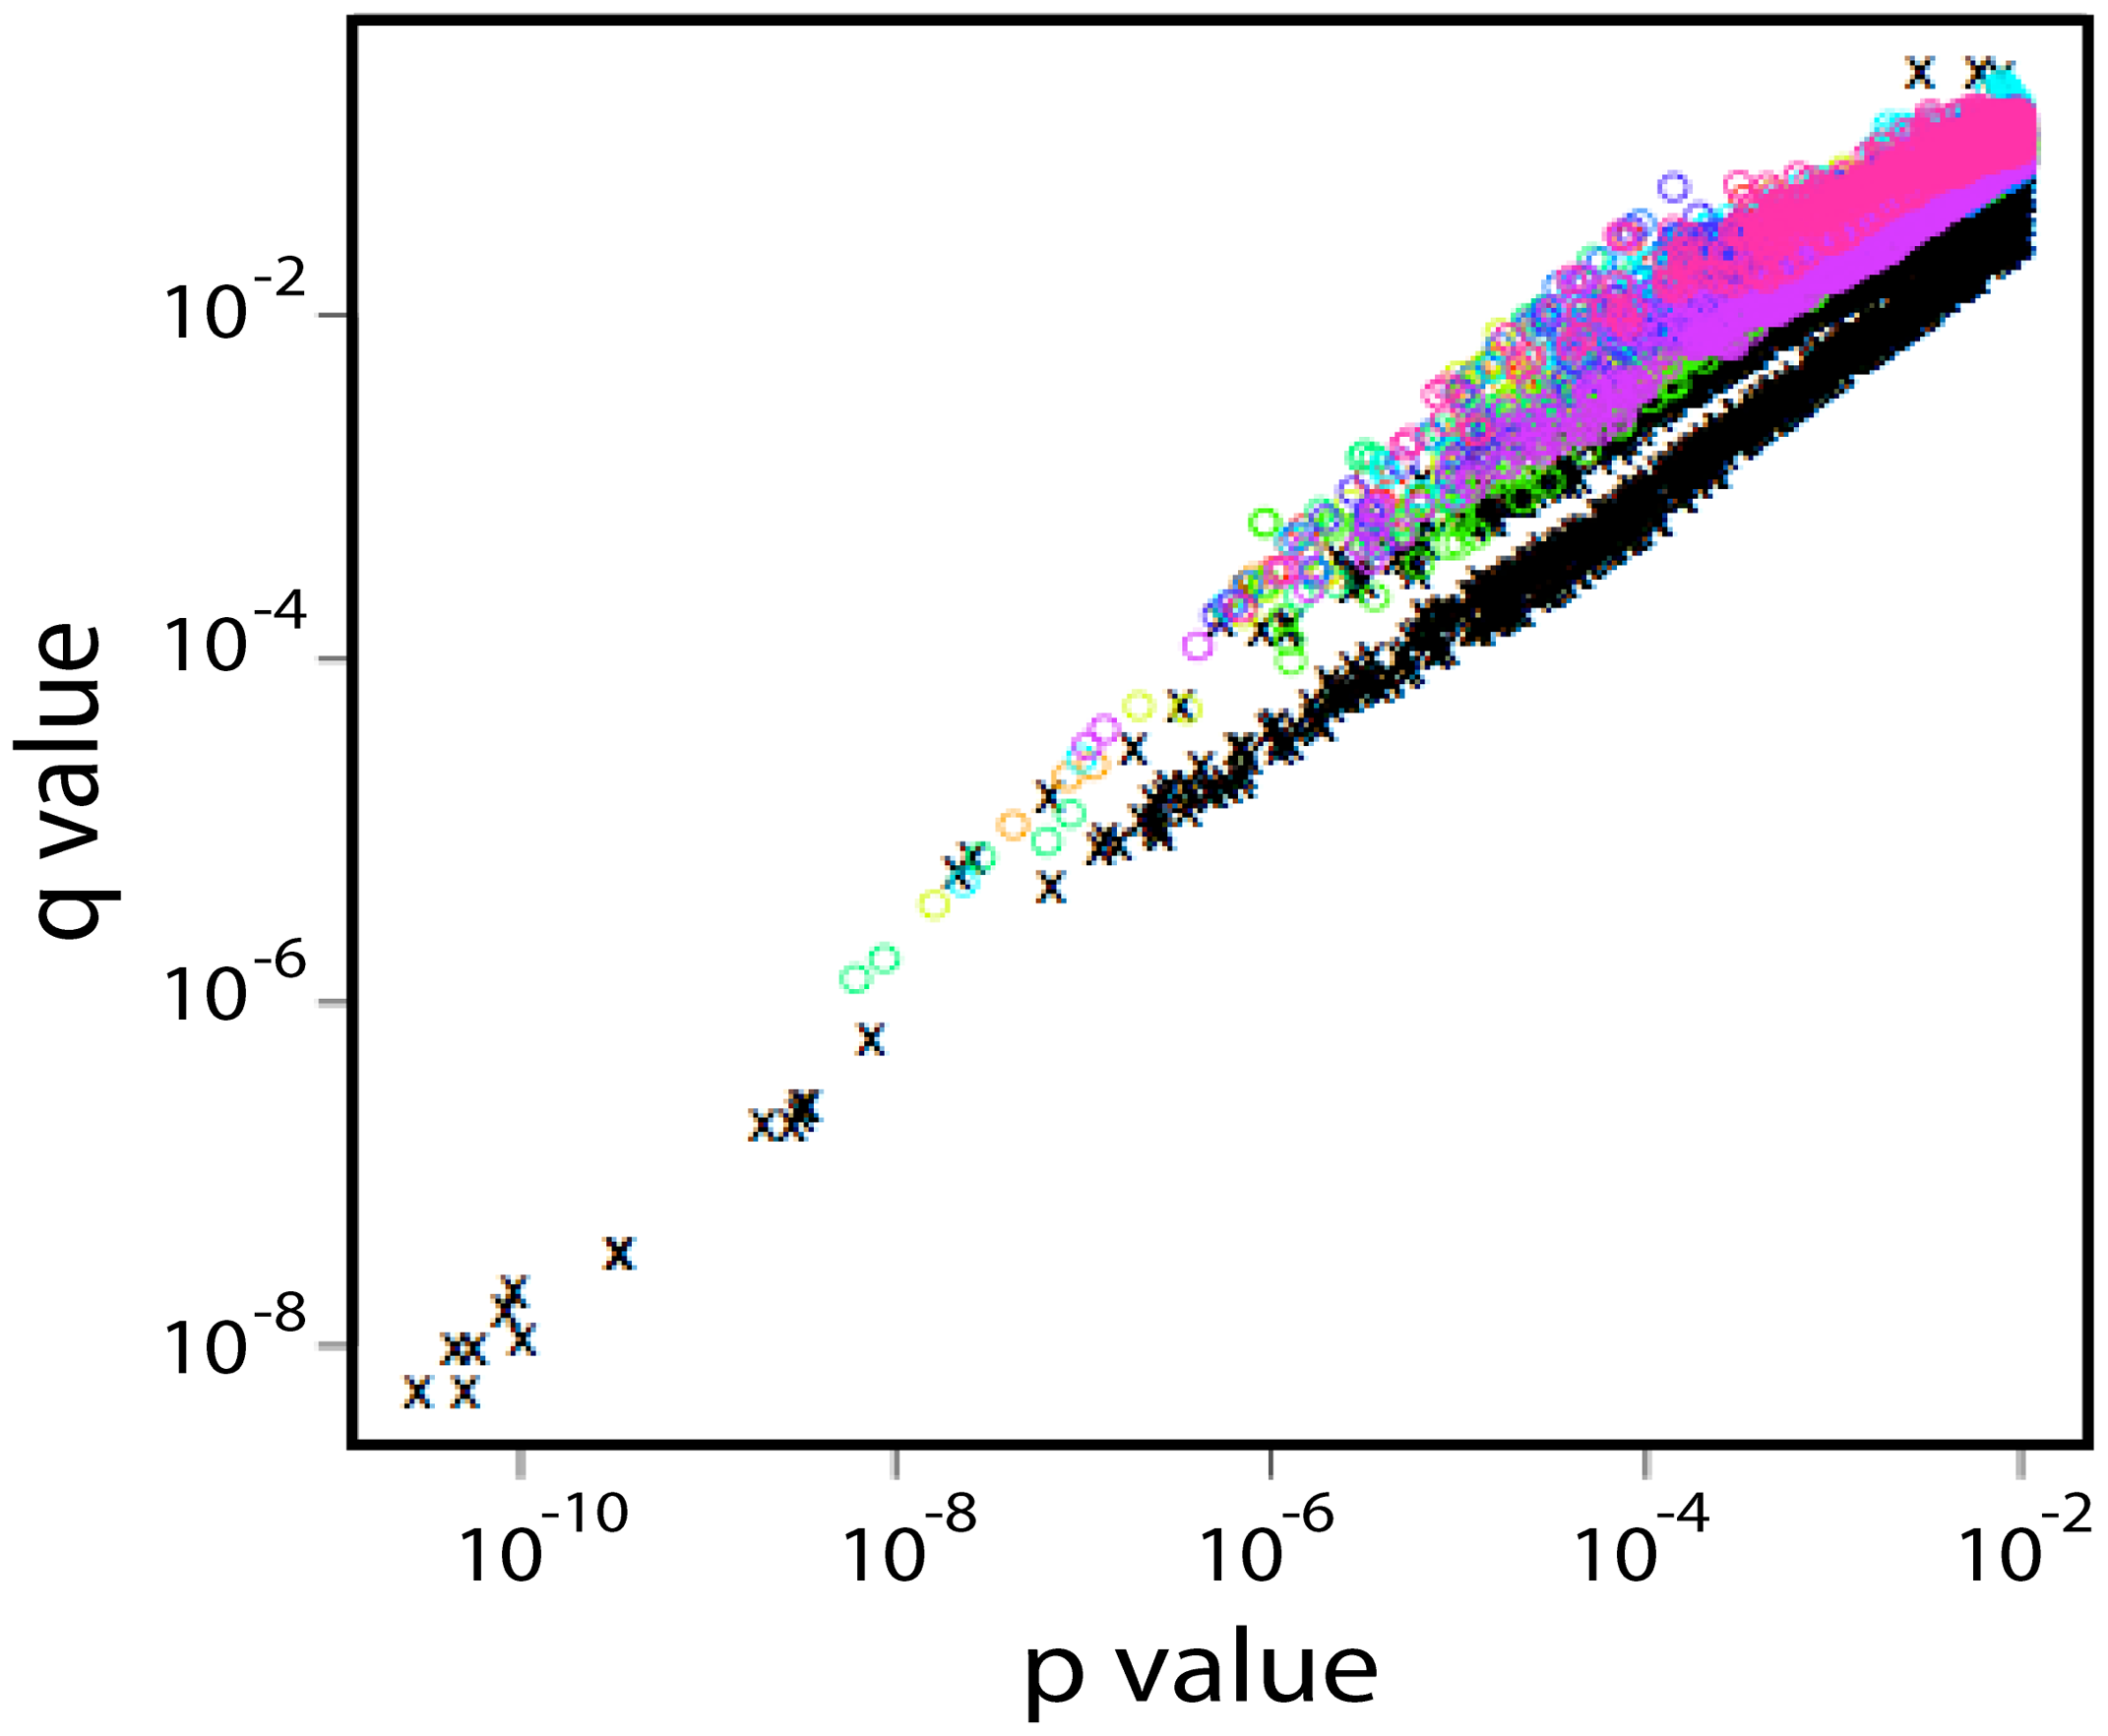 p- and q-values found in shuffling experiments in which the entire sequence signature strategy was repeated 10 times after randomizing the early and chronic designation of each subject.